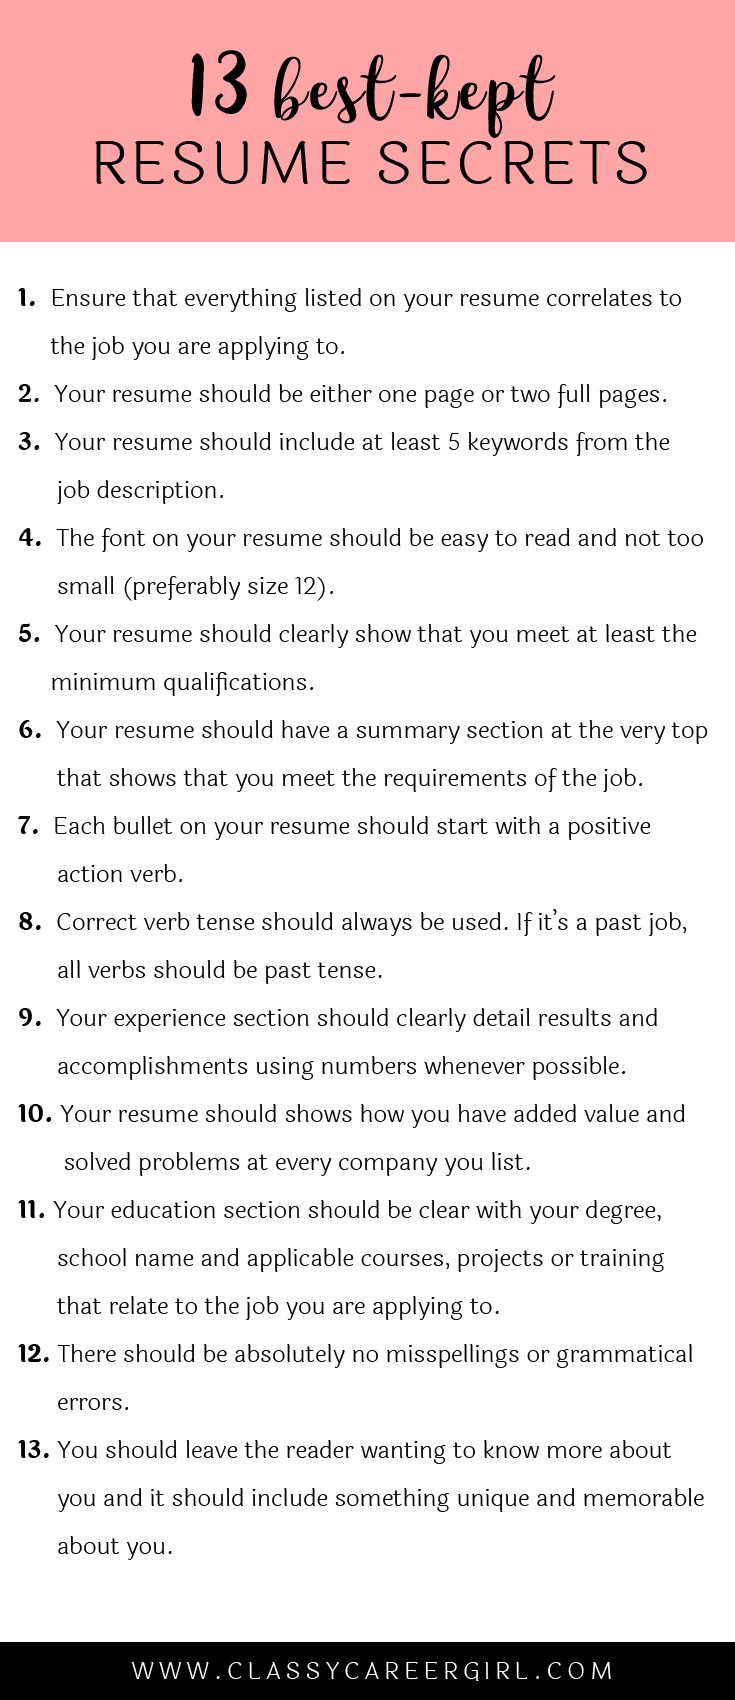 Picnictoimpeachus  Picturesque  Ideas About Resume On Pinterest  Cv Format Resume Cv And  With Marvelous Some Hiring Managers Will Toss Your Resume Out If You Dont Know These  With Endearing Best Sample Resume Also Resume For Registered Nurse In Addition Athletic Trainer Resume And Best Skills To Put On Resume As Well As How To Name Your Resume Additionally Example Of Functional Resume From Pinterestcom With Picnictoimpeachus  Marvelous  Ideas About Resume On Pinterest  Cv Format Resume Cv And  With Endearing Some Hiring Managers Will Toss Your Resume Out If You Dont Know These  And Picturesque Best Sample Resume Also Resume For Registered Nurse In Addition Athletic Trainer Resume From Pinterestcom